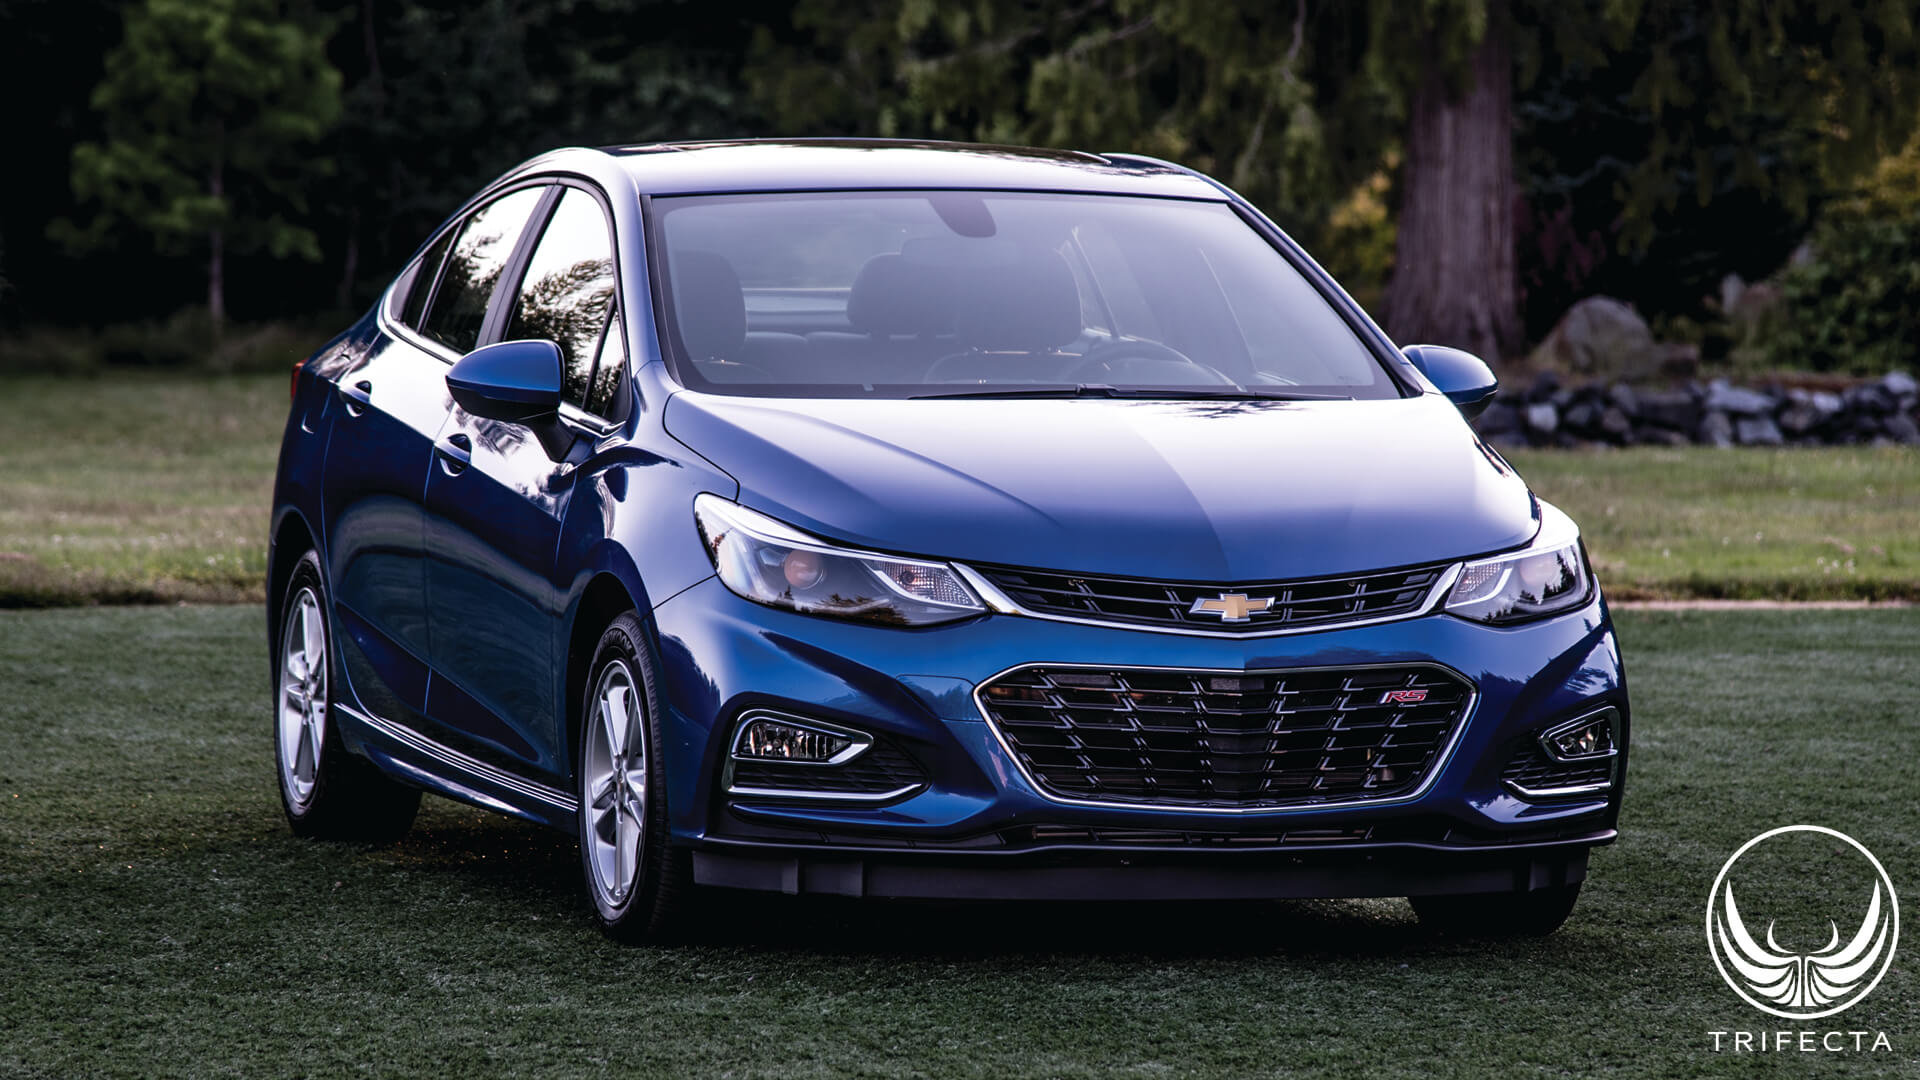 Product Review: 2016--2018+ Chevrolet Cruze / Cruze Hatch - 1.4L Turbo Advantage